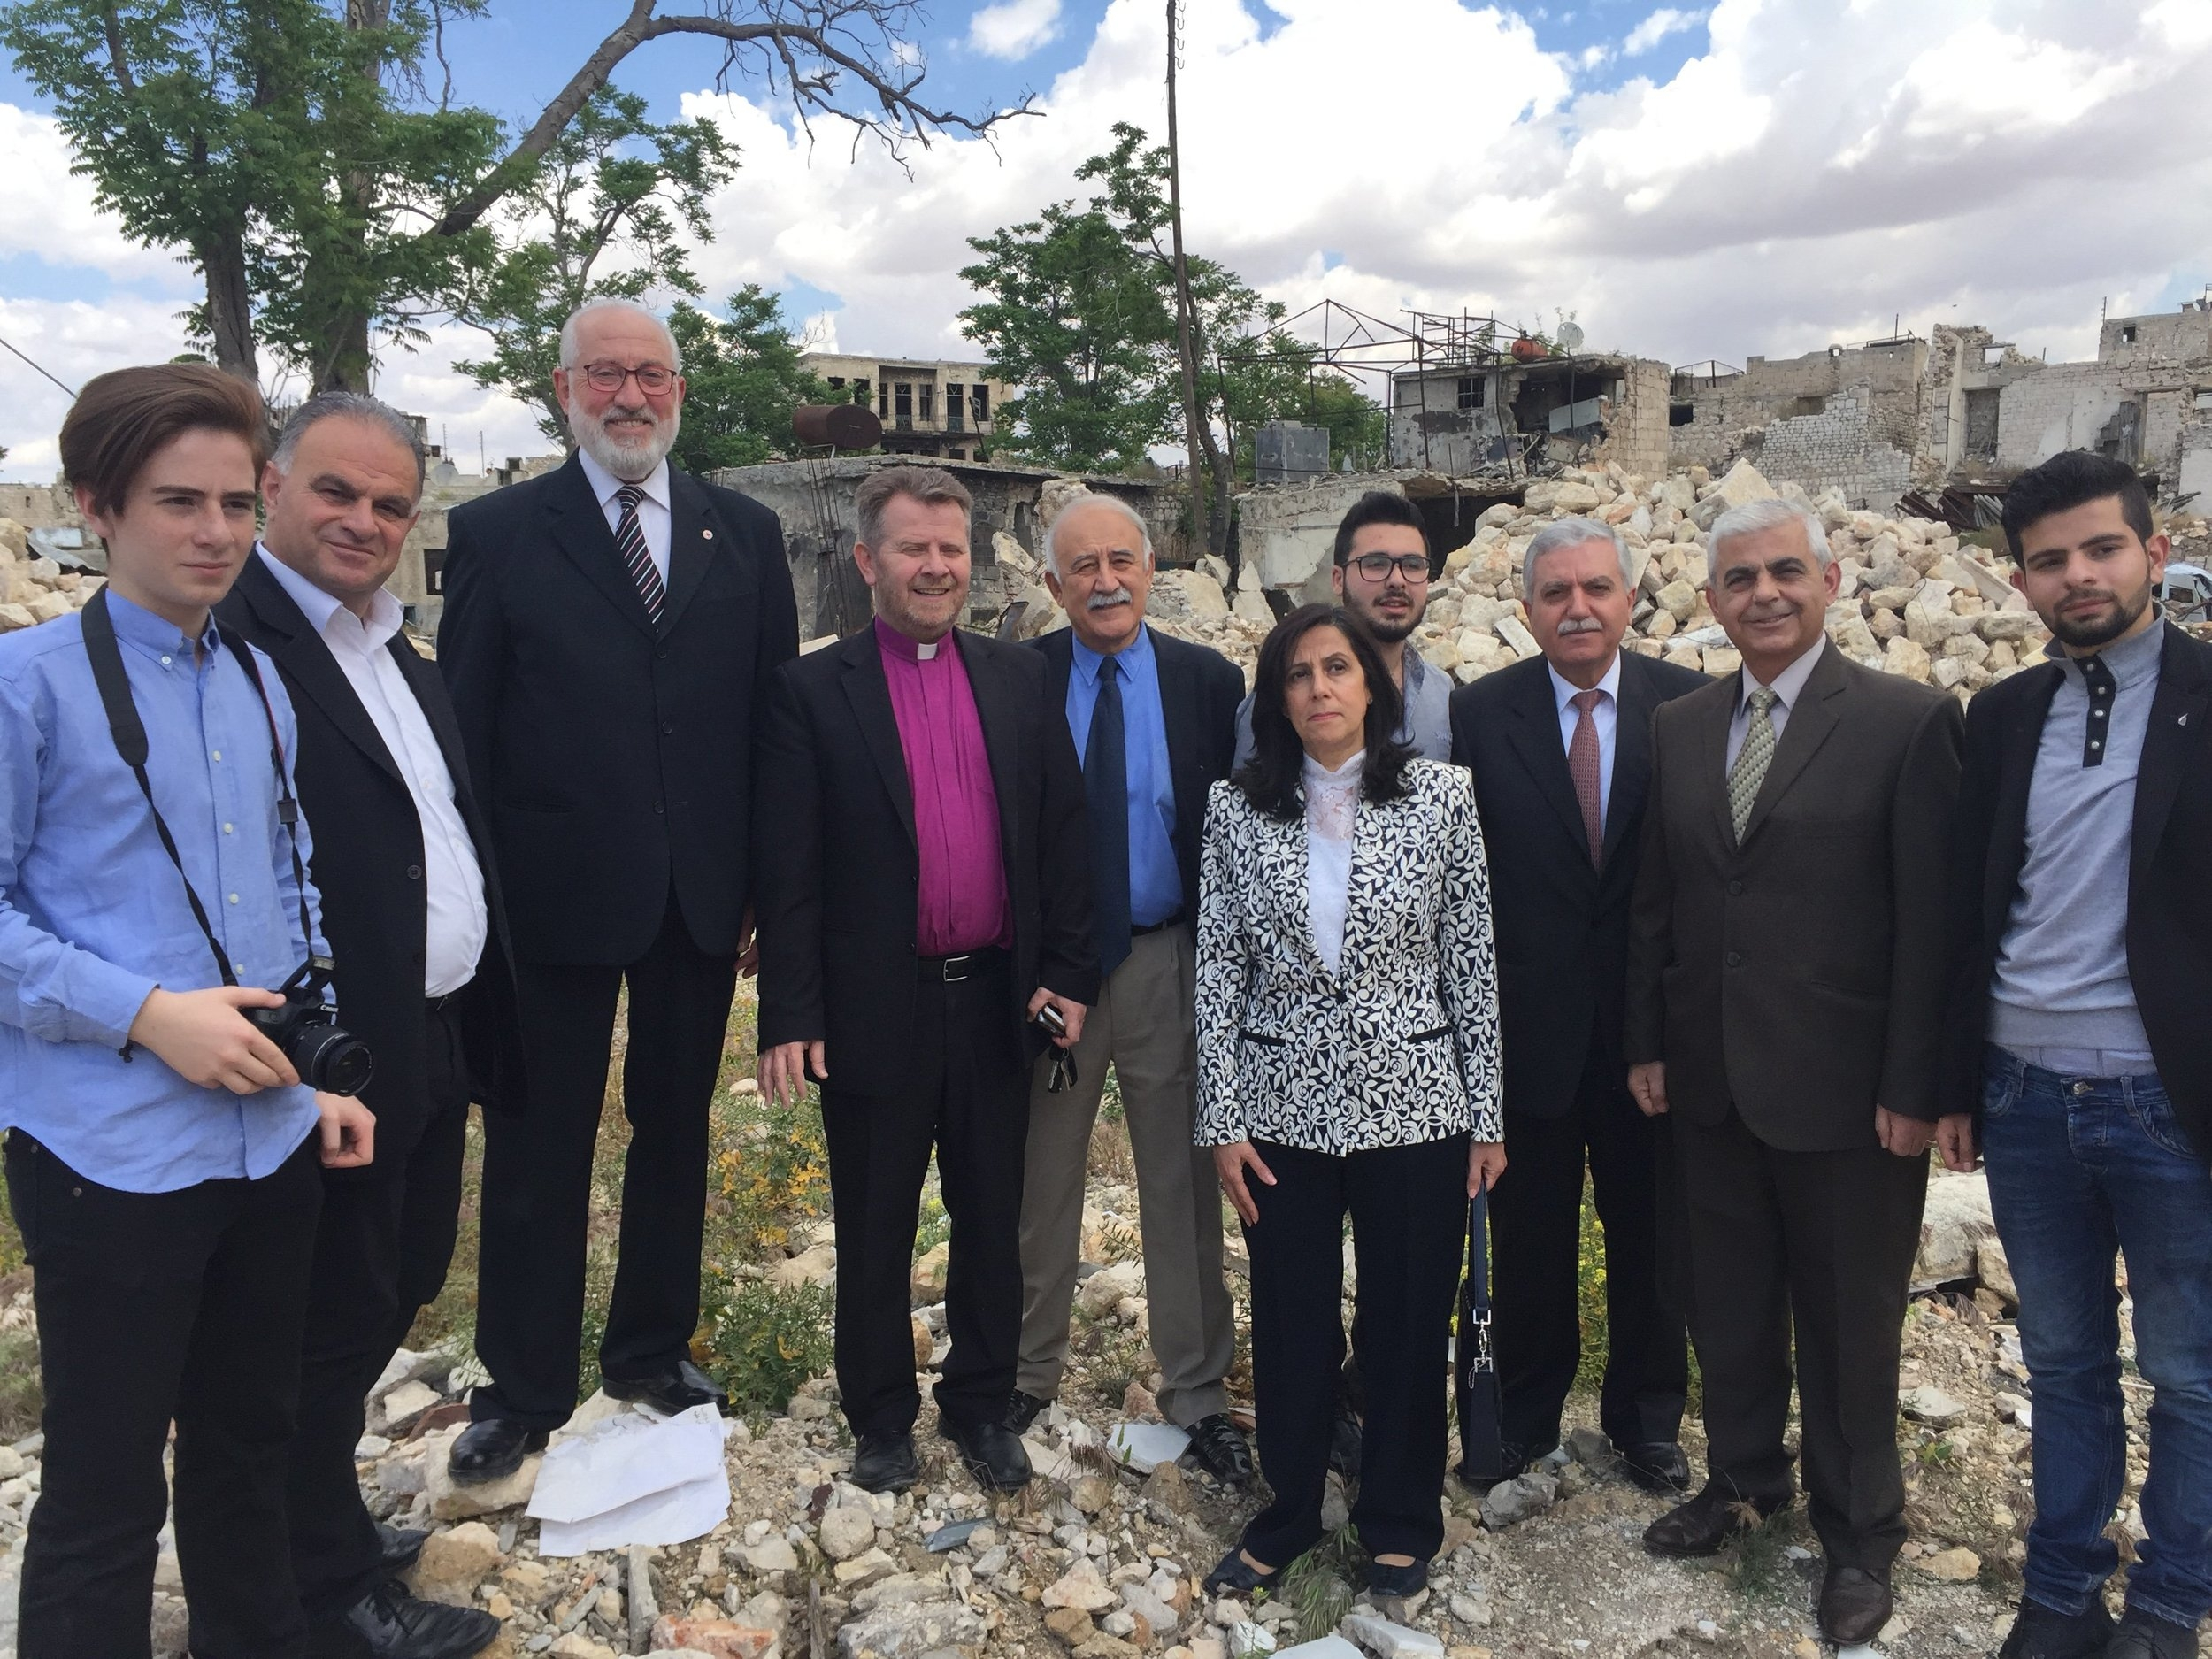 Rev. Ibrahim and his elders atop the rubble of the old church